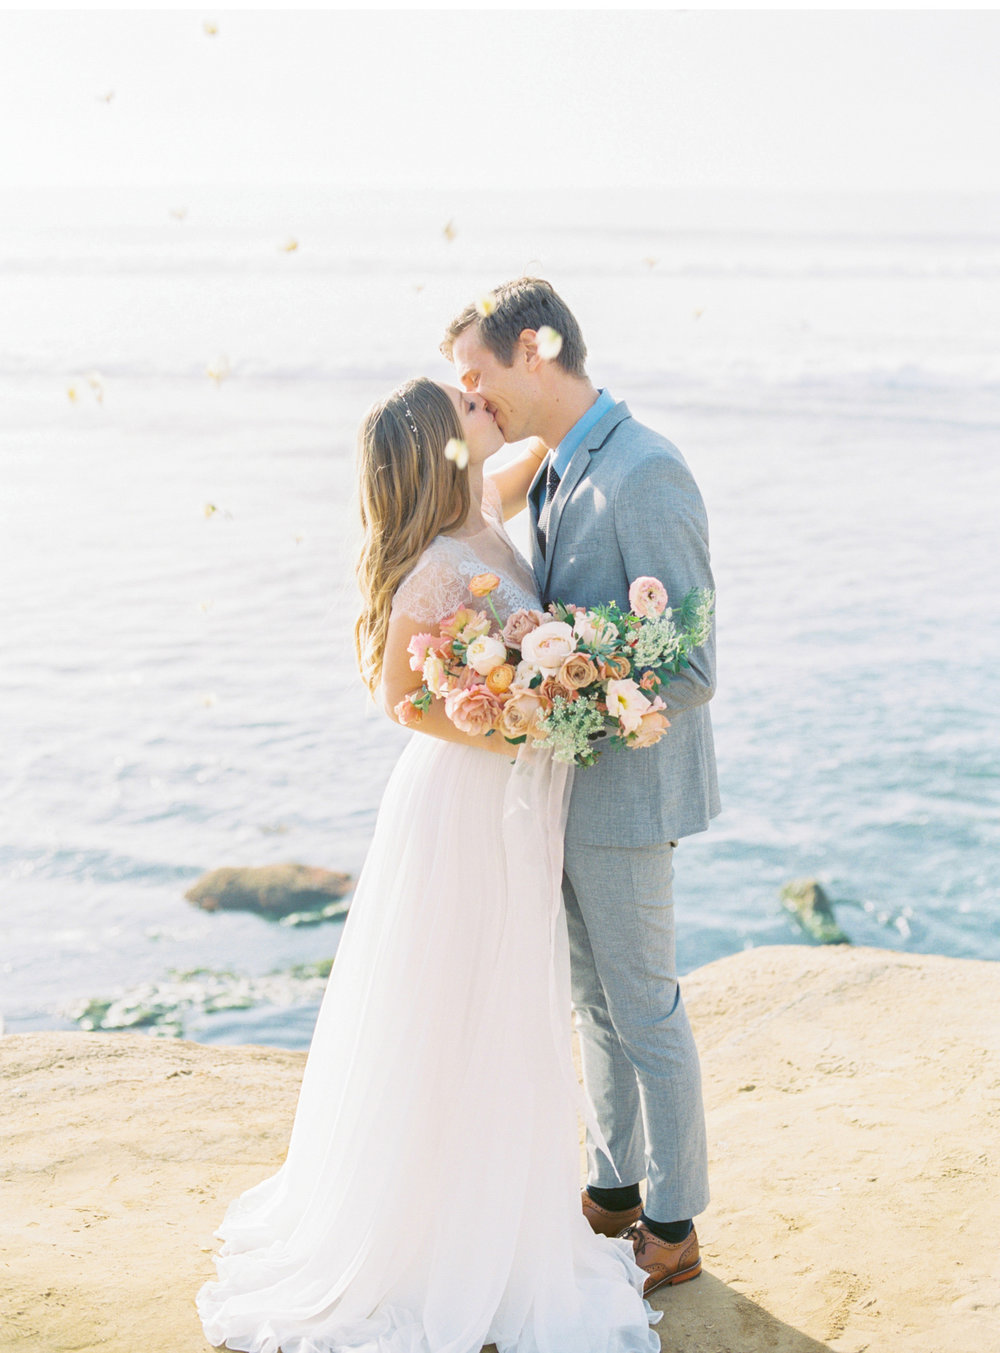 Style-Me-Pretty-California-Beach-Wedding-Natalie-Schutt-Photography_04.jpg